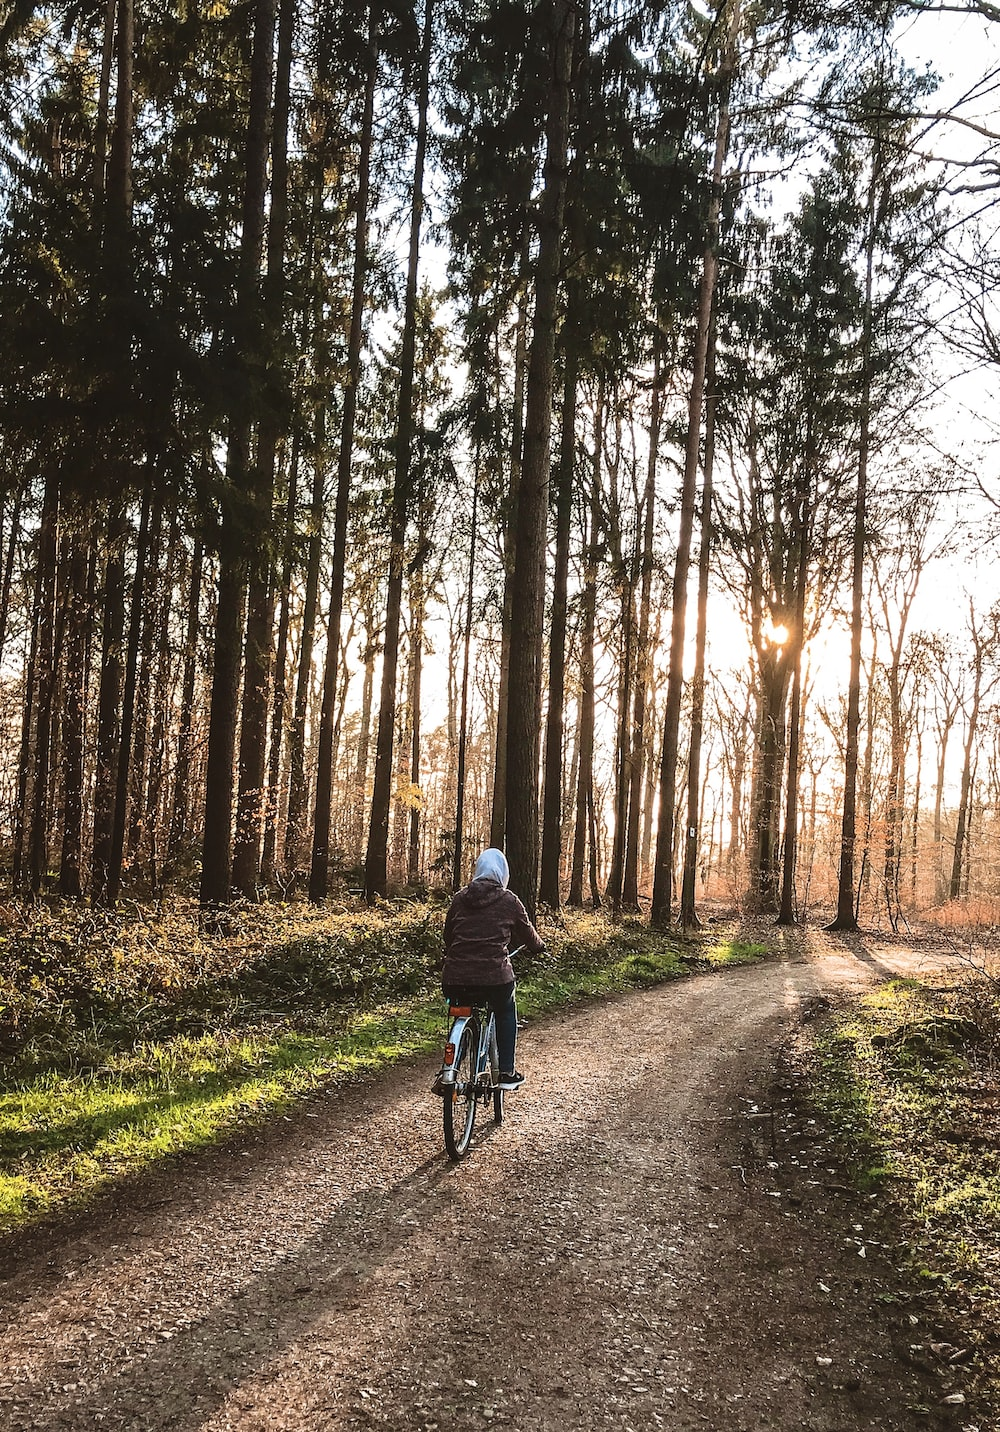 man in blue jacket riding bicycle on pathway between trees during daytime